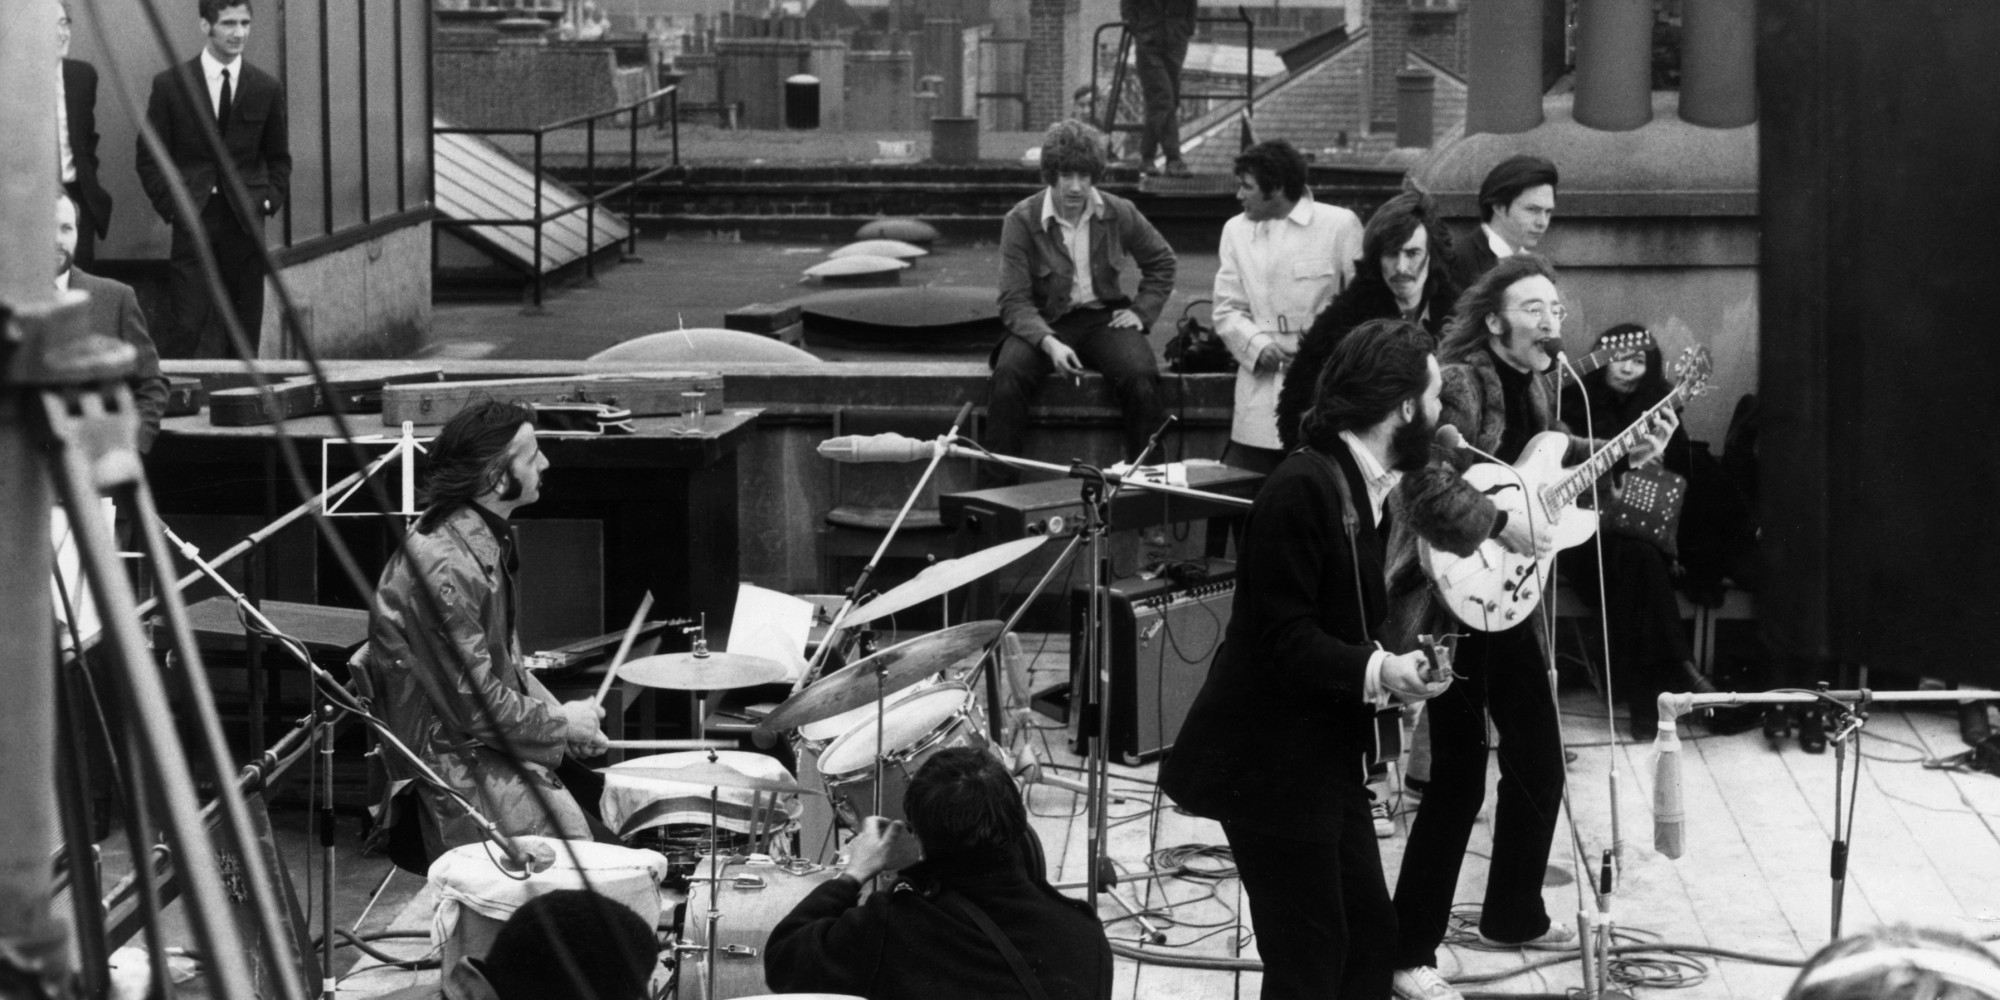 The Beatles Rooftop